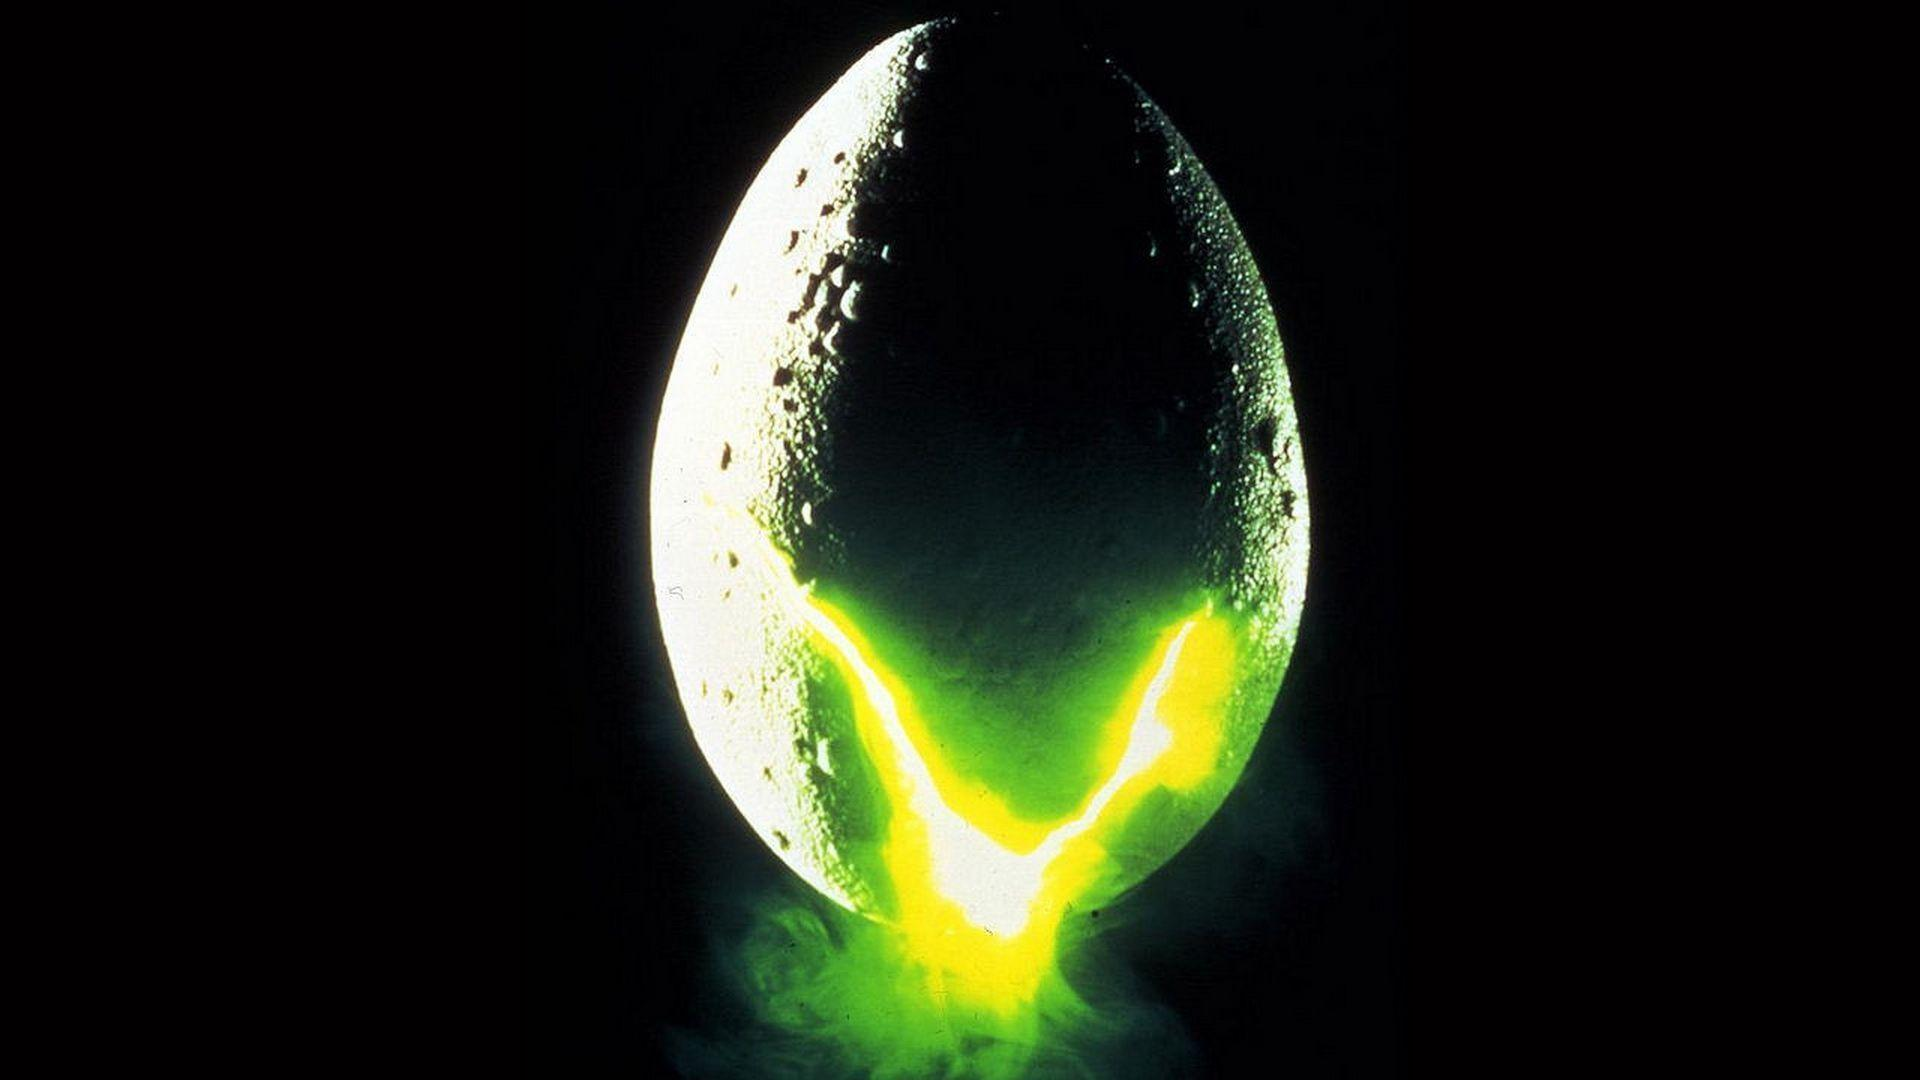 Wallpapers Alien 1920x1080